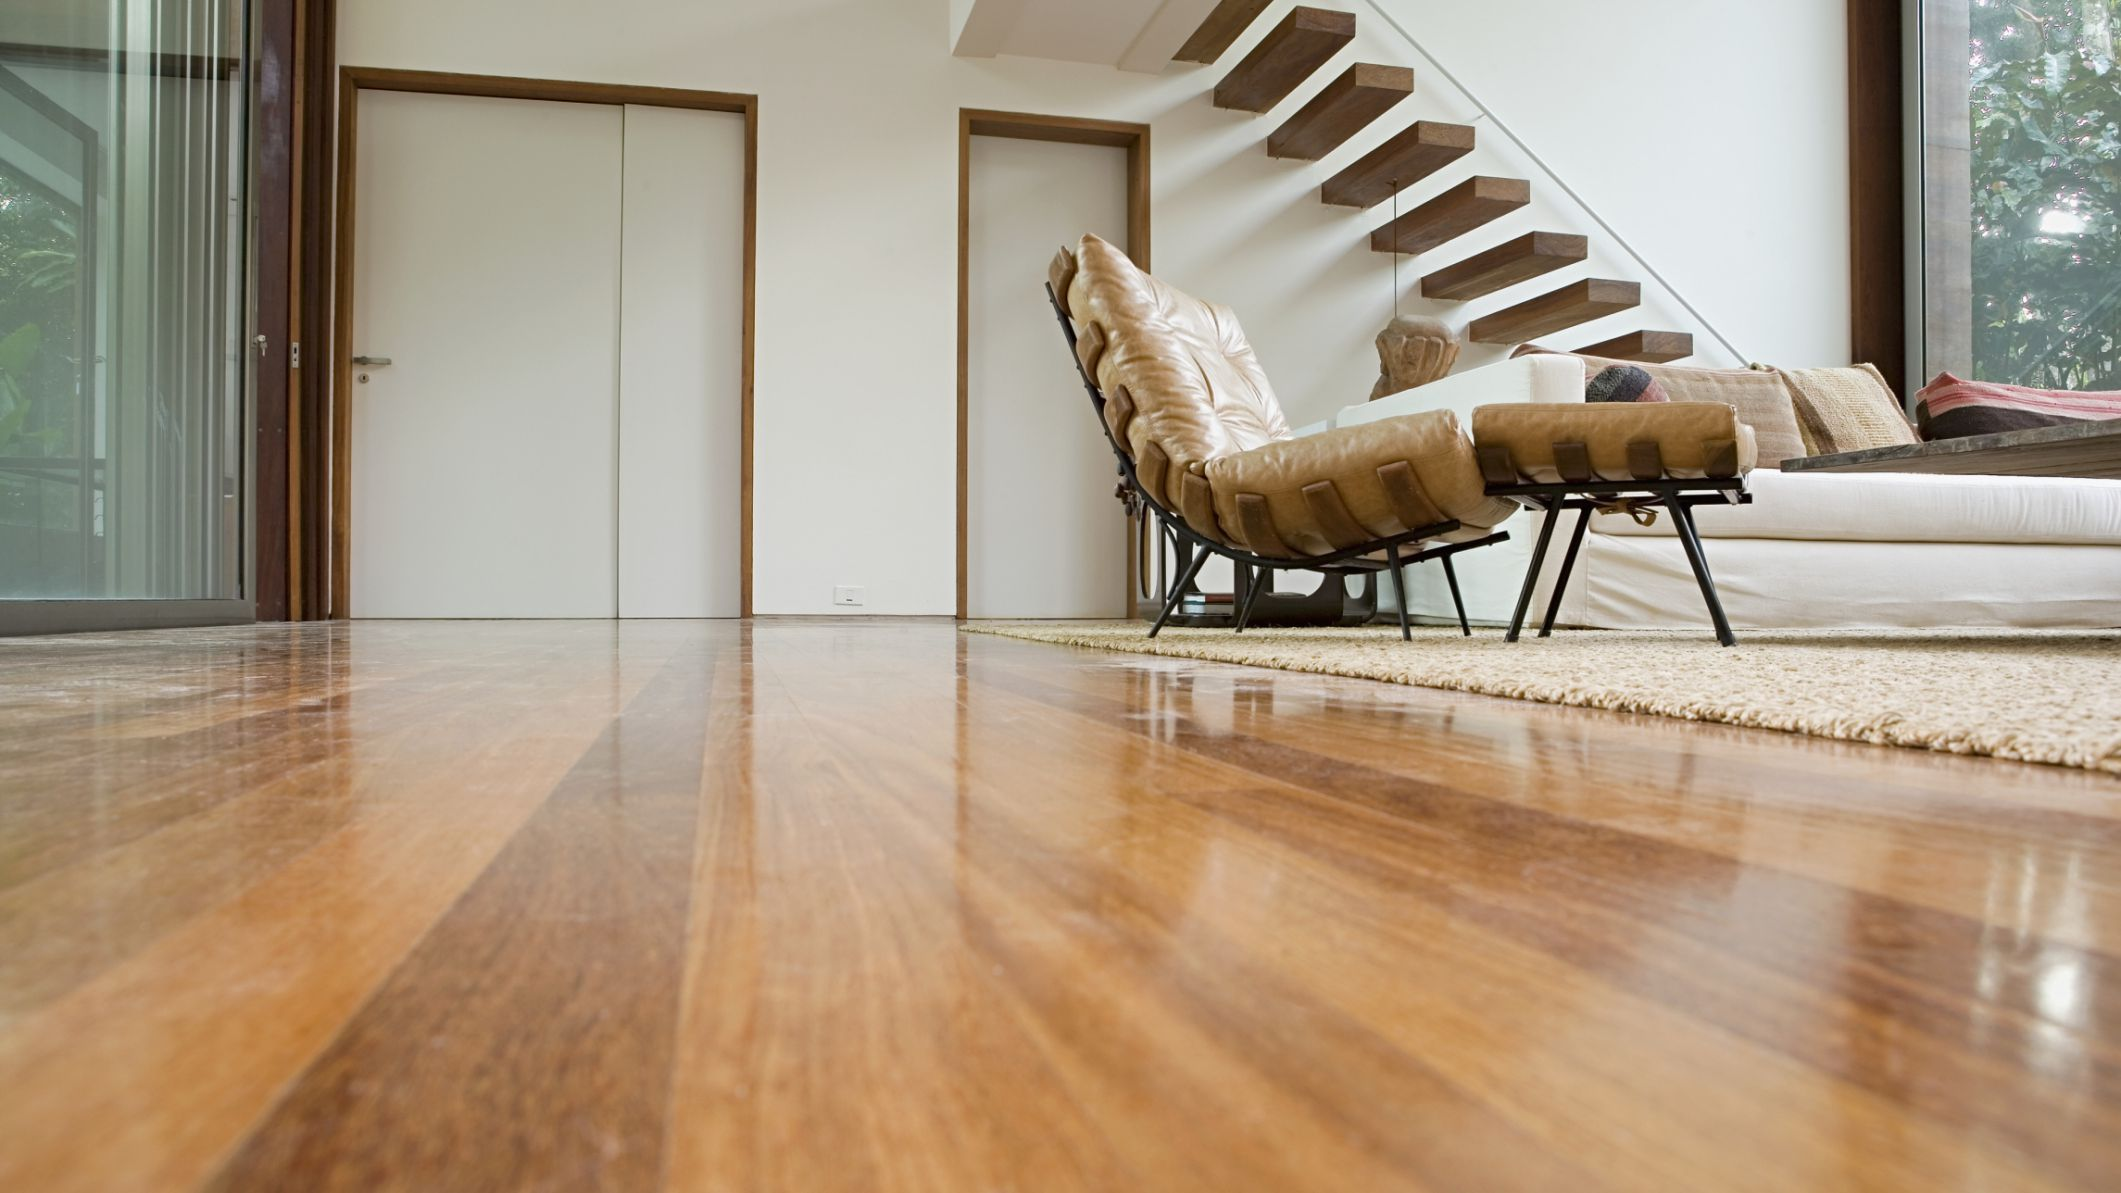 Using Hardwood in Your Home